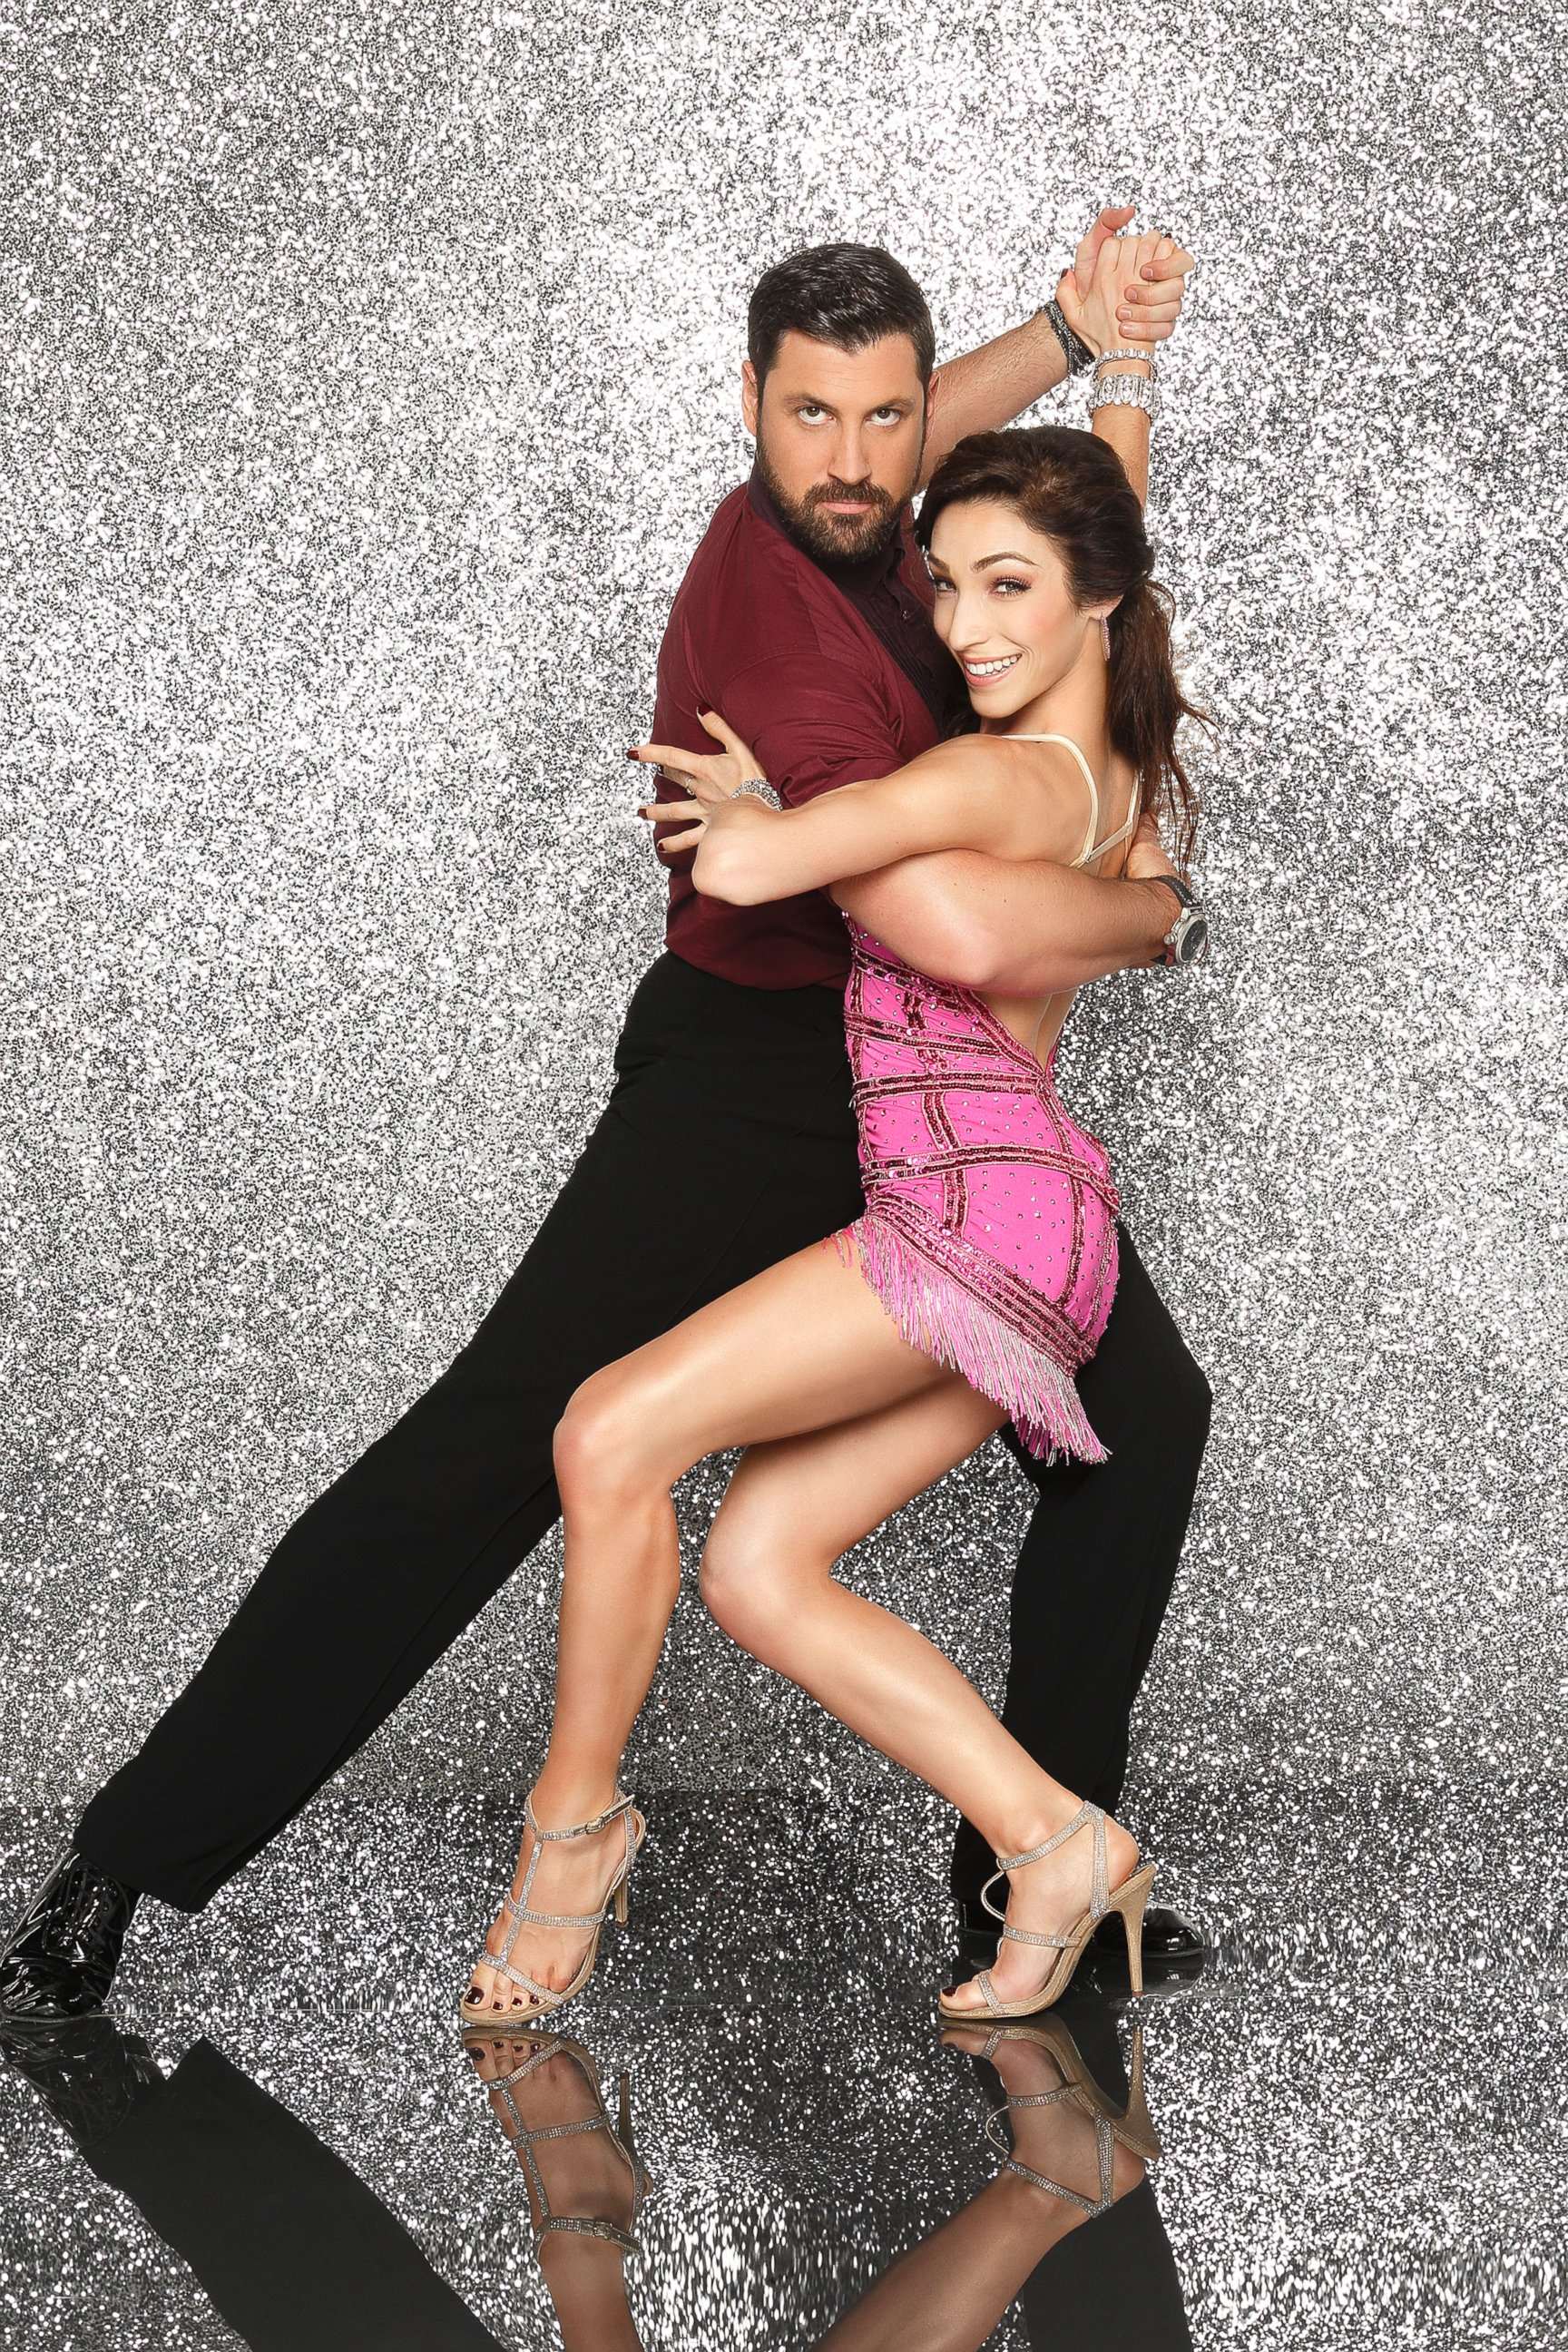 135074 4257r2 1 Dancing With the Stars: Partners Switch, Davis Outshines Competition